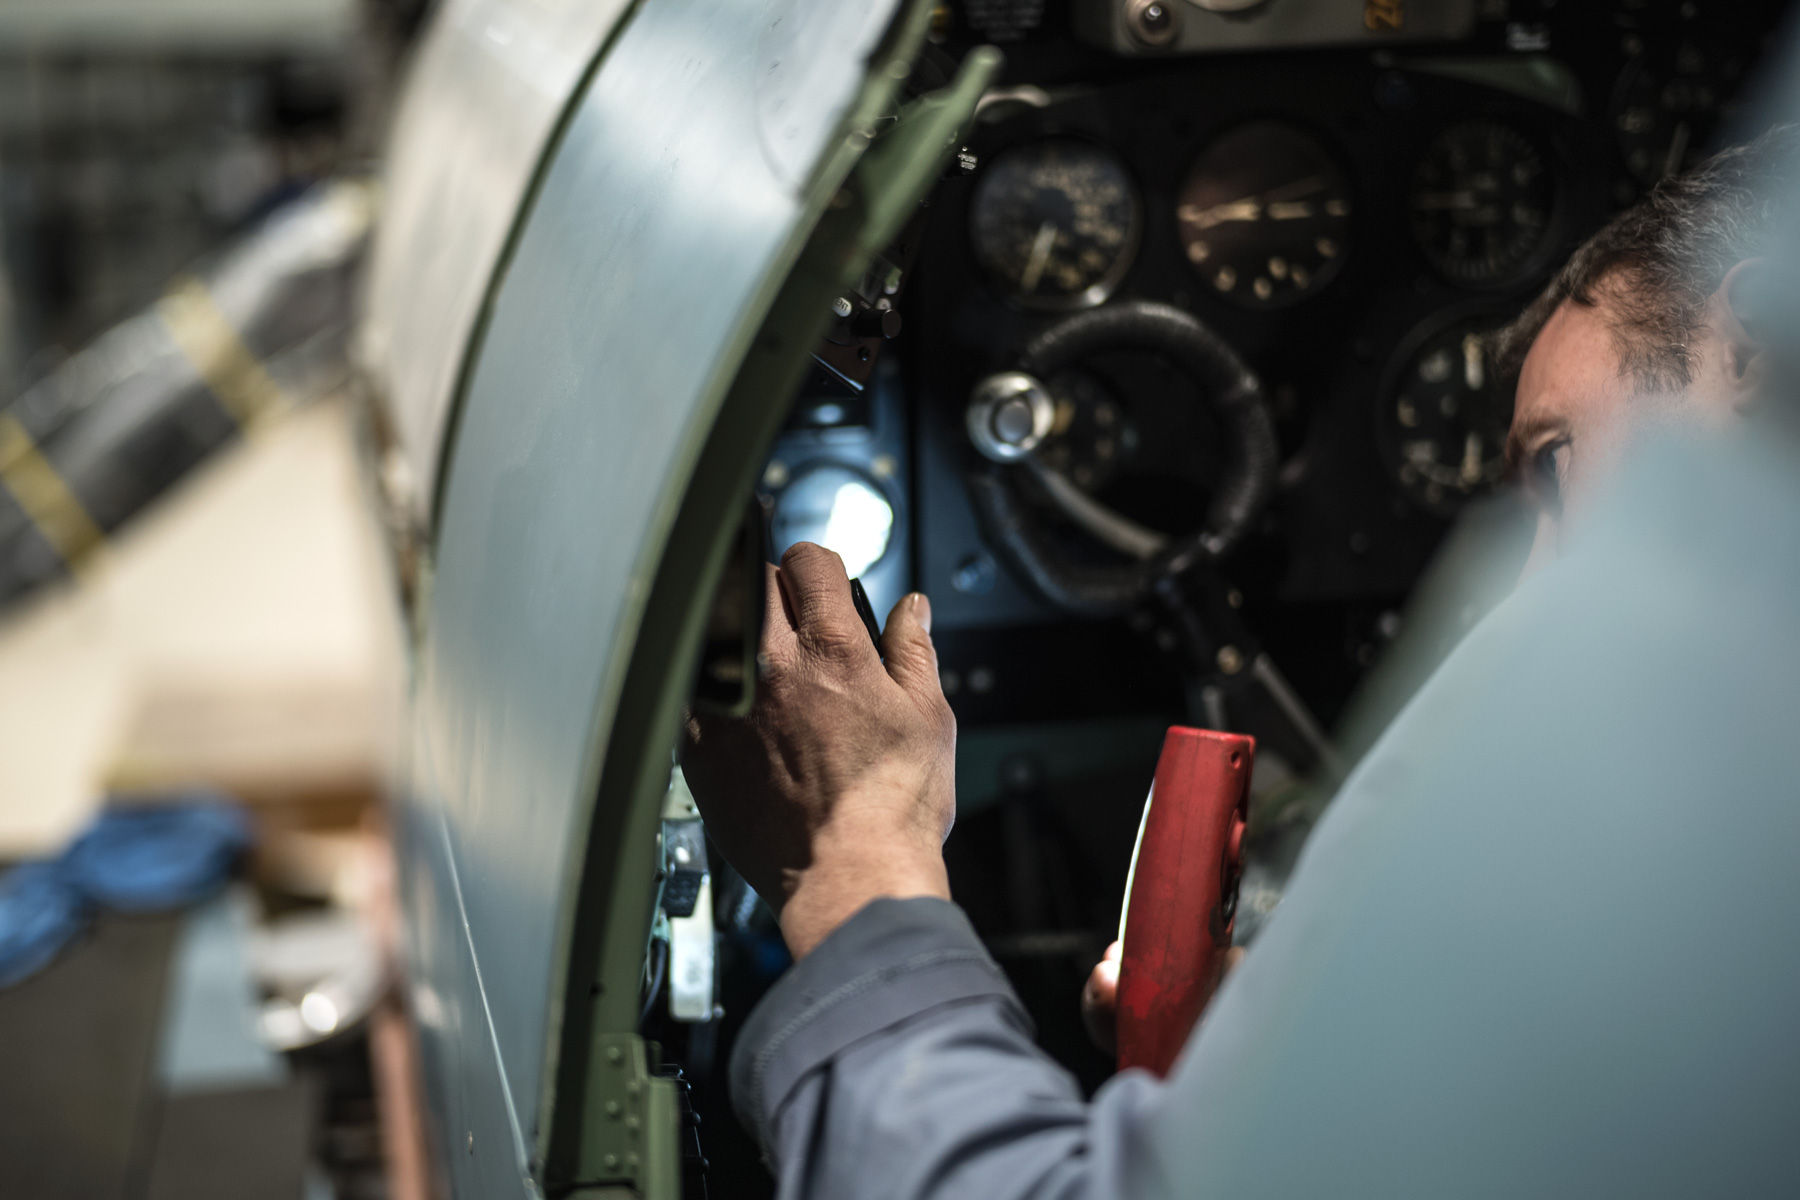 HFL-Spitfire-restoration-engineer-prxi-cockpit.jpg